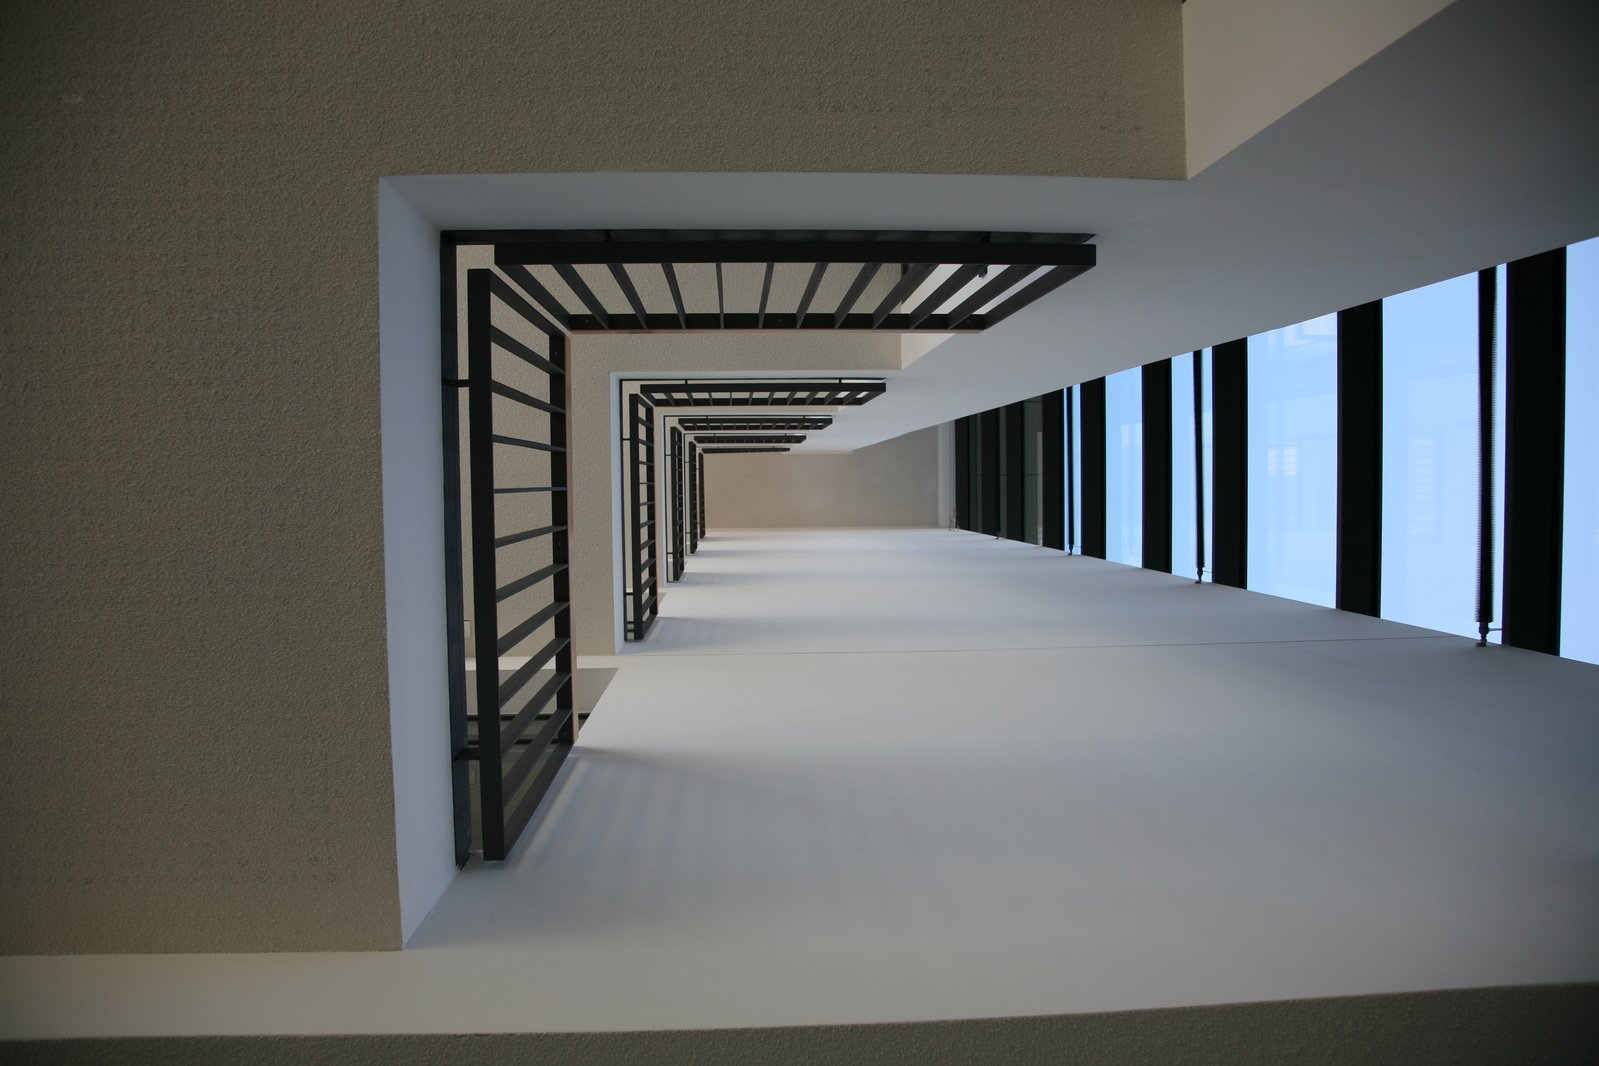 stairway-to-ceiling-2-1222876